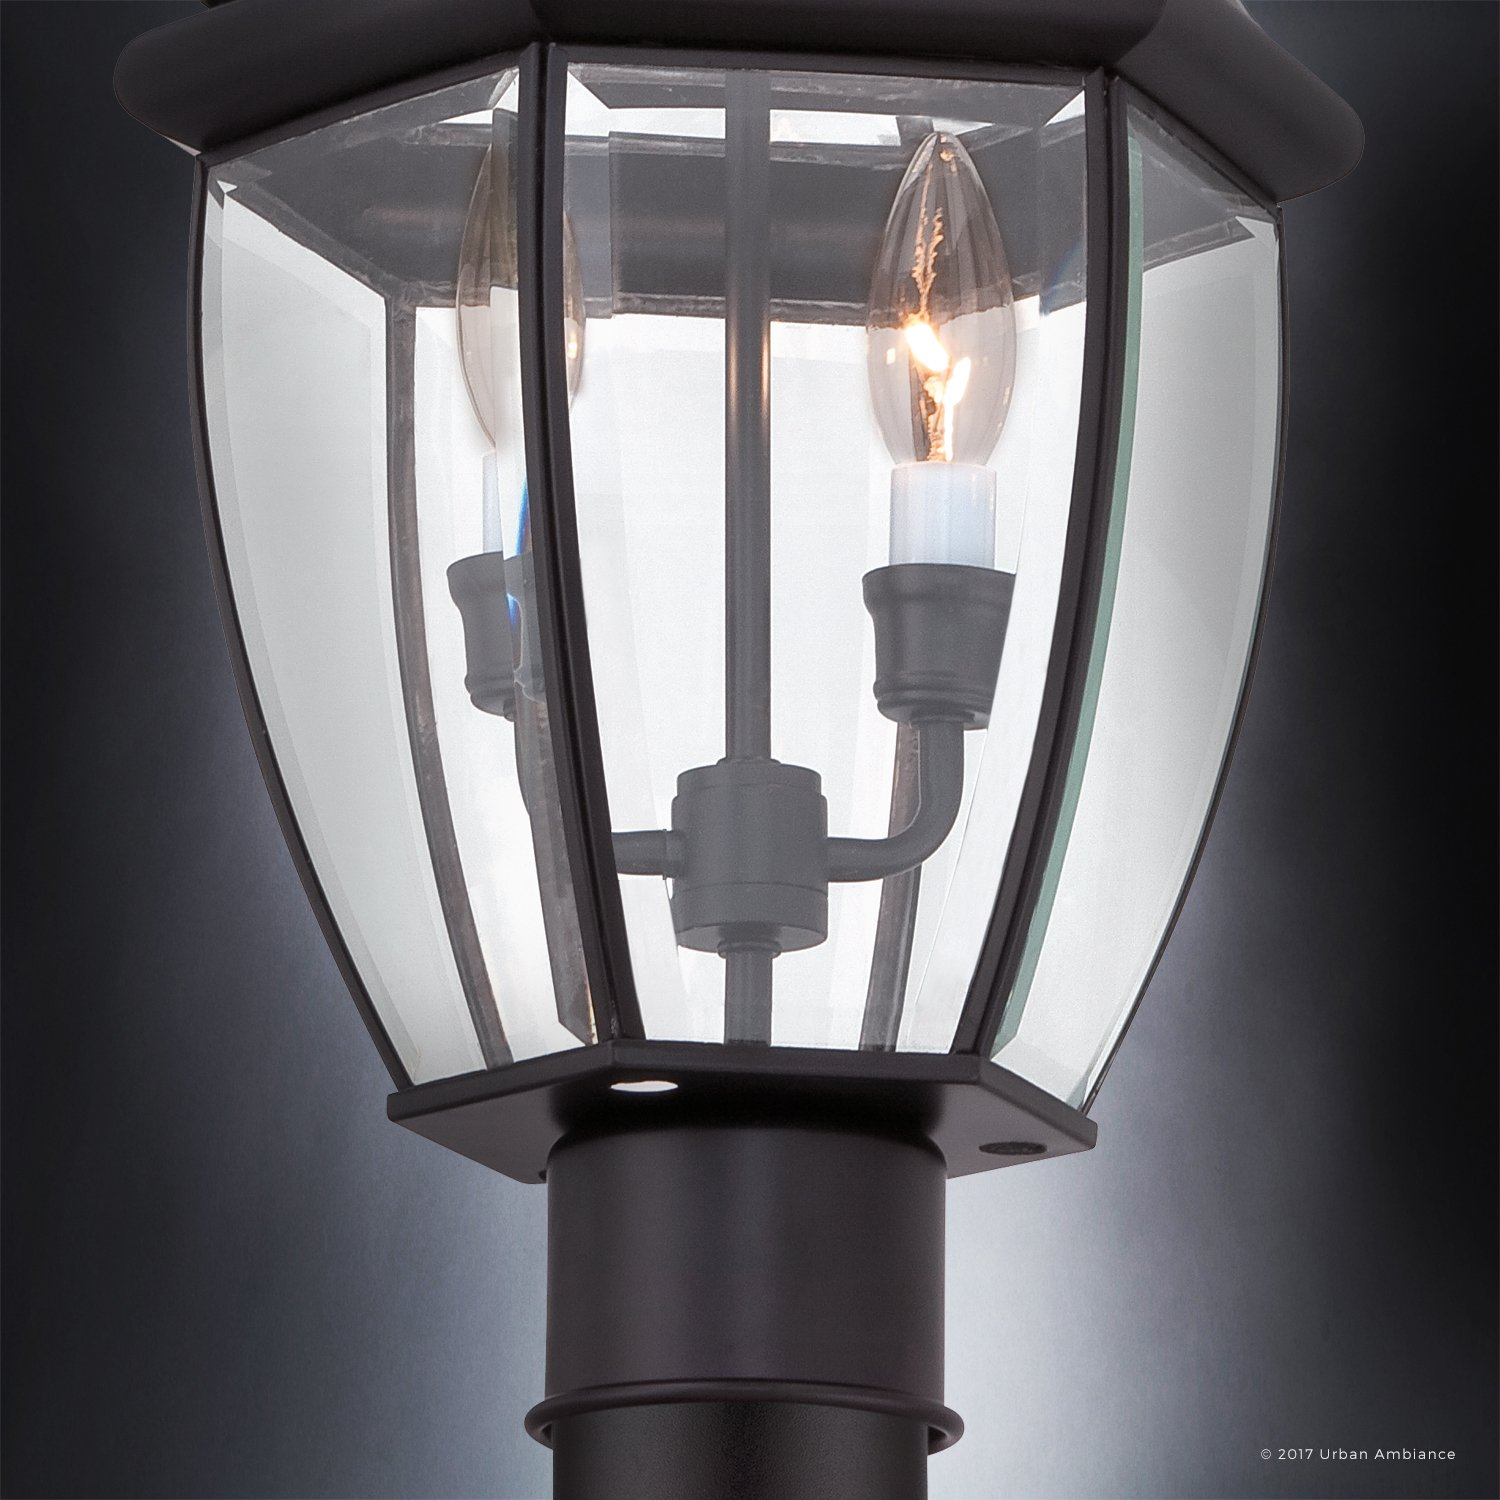 Luxury Colonial Outdoor Post Light, Large Size: 21''H x 11''W, with Tudor Style Elements, Versatile Design, High-End Black Silk Finish and Beveled Glass, UQL1148 by Urban Ambiance by Urban Ambiance (Image #6)